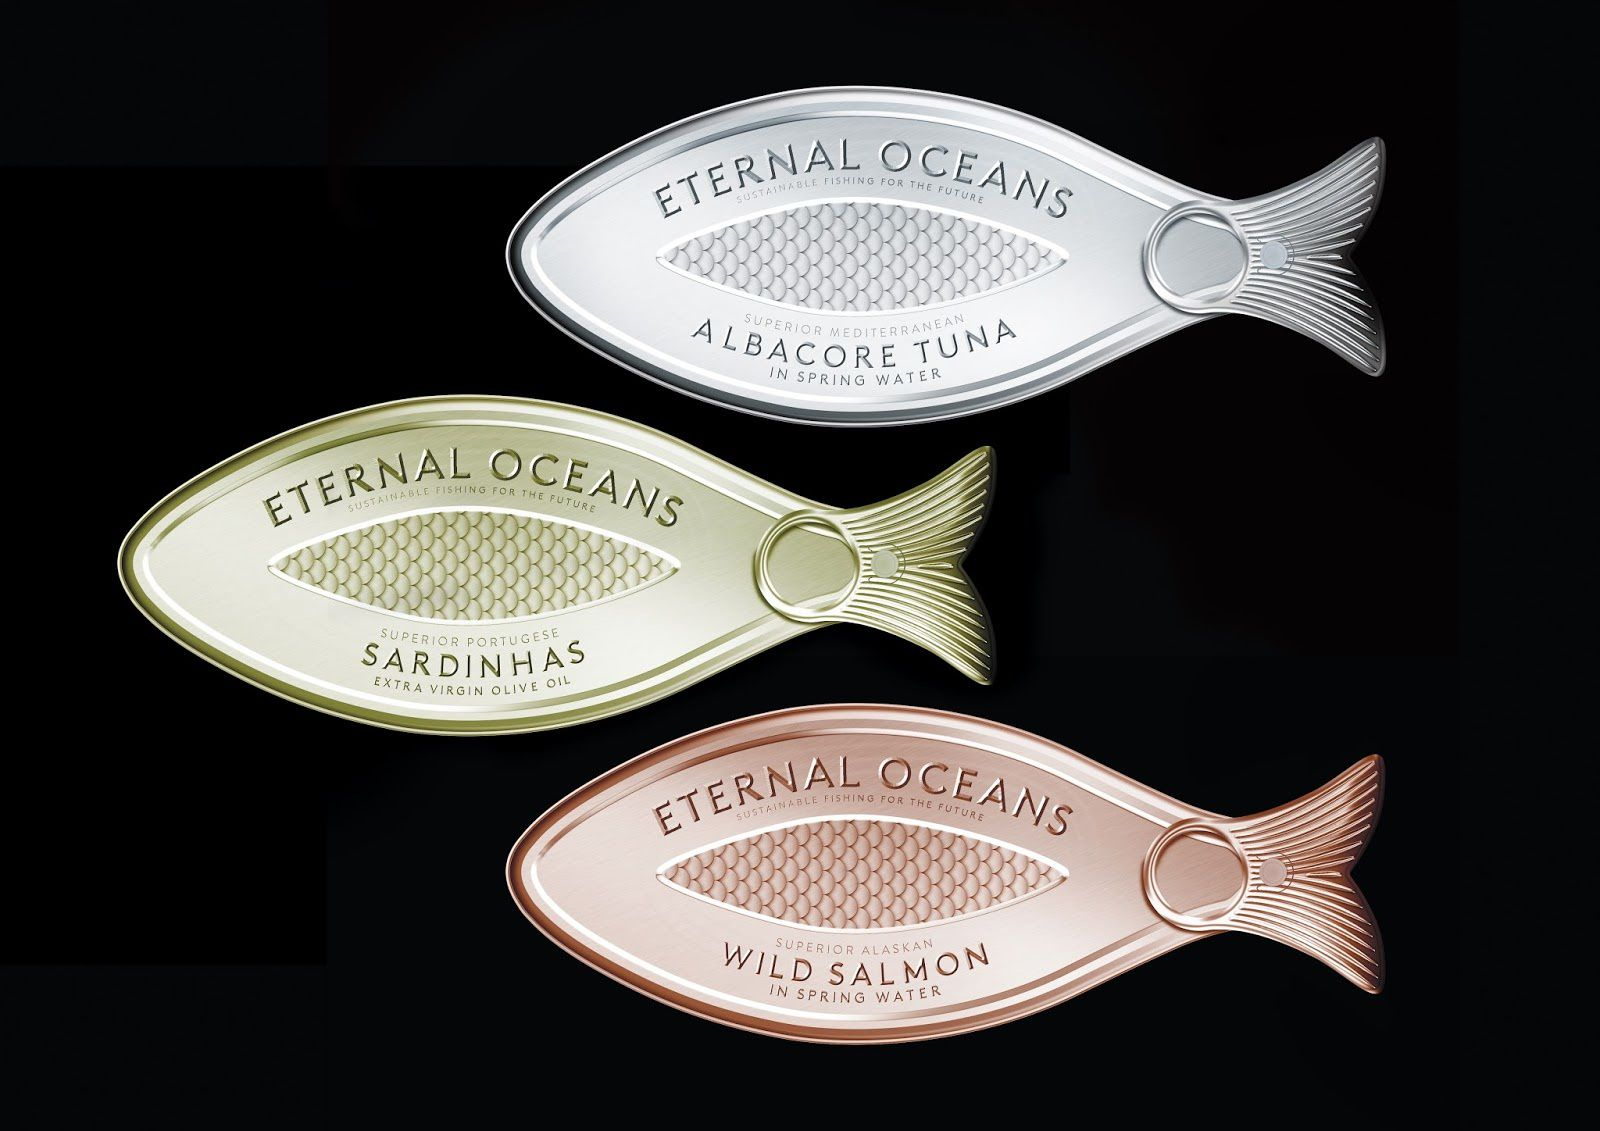 Eternal Oceans (conserves de poisson issu de pêche 100% durable) I Design : Anthem, Benelux (octobre 2016)